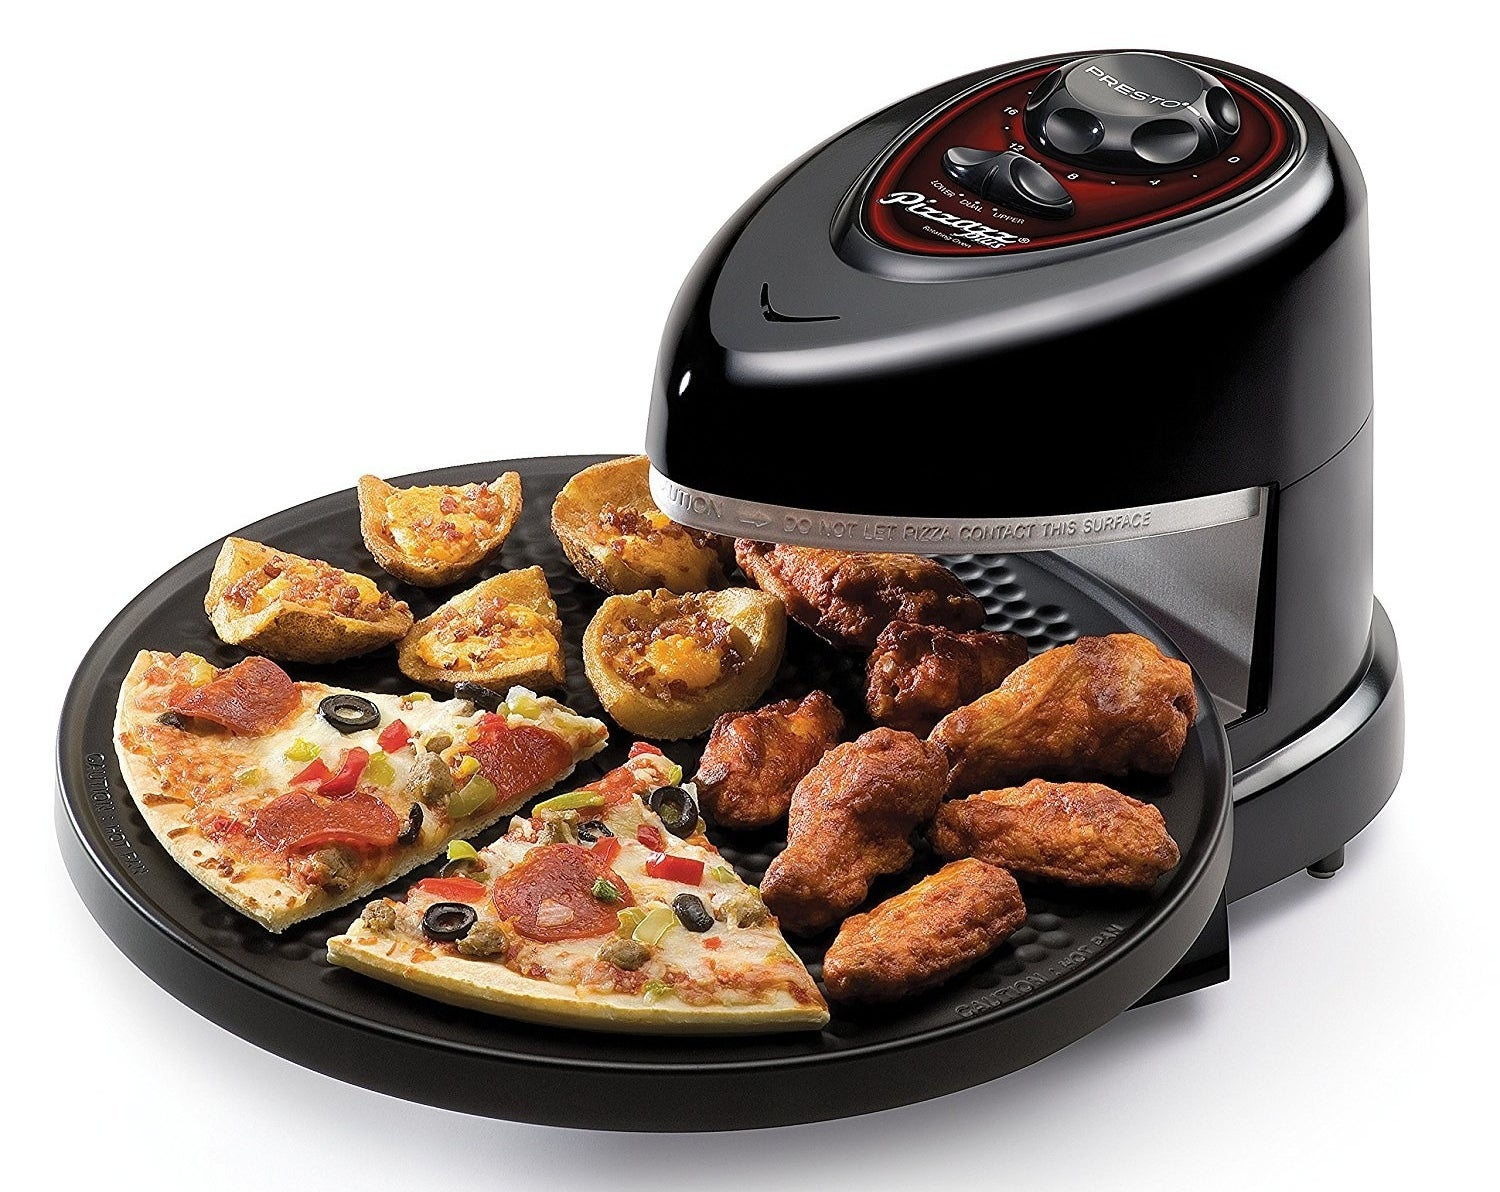 the rotating cooker